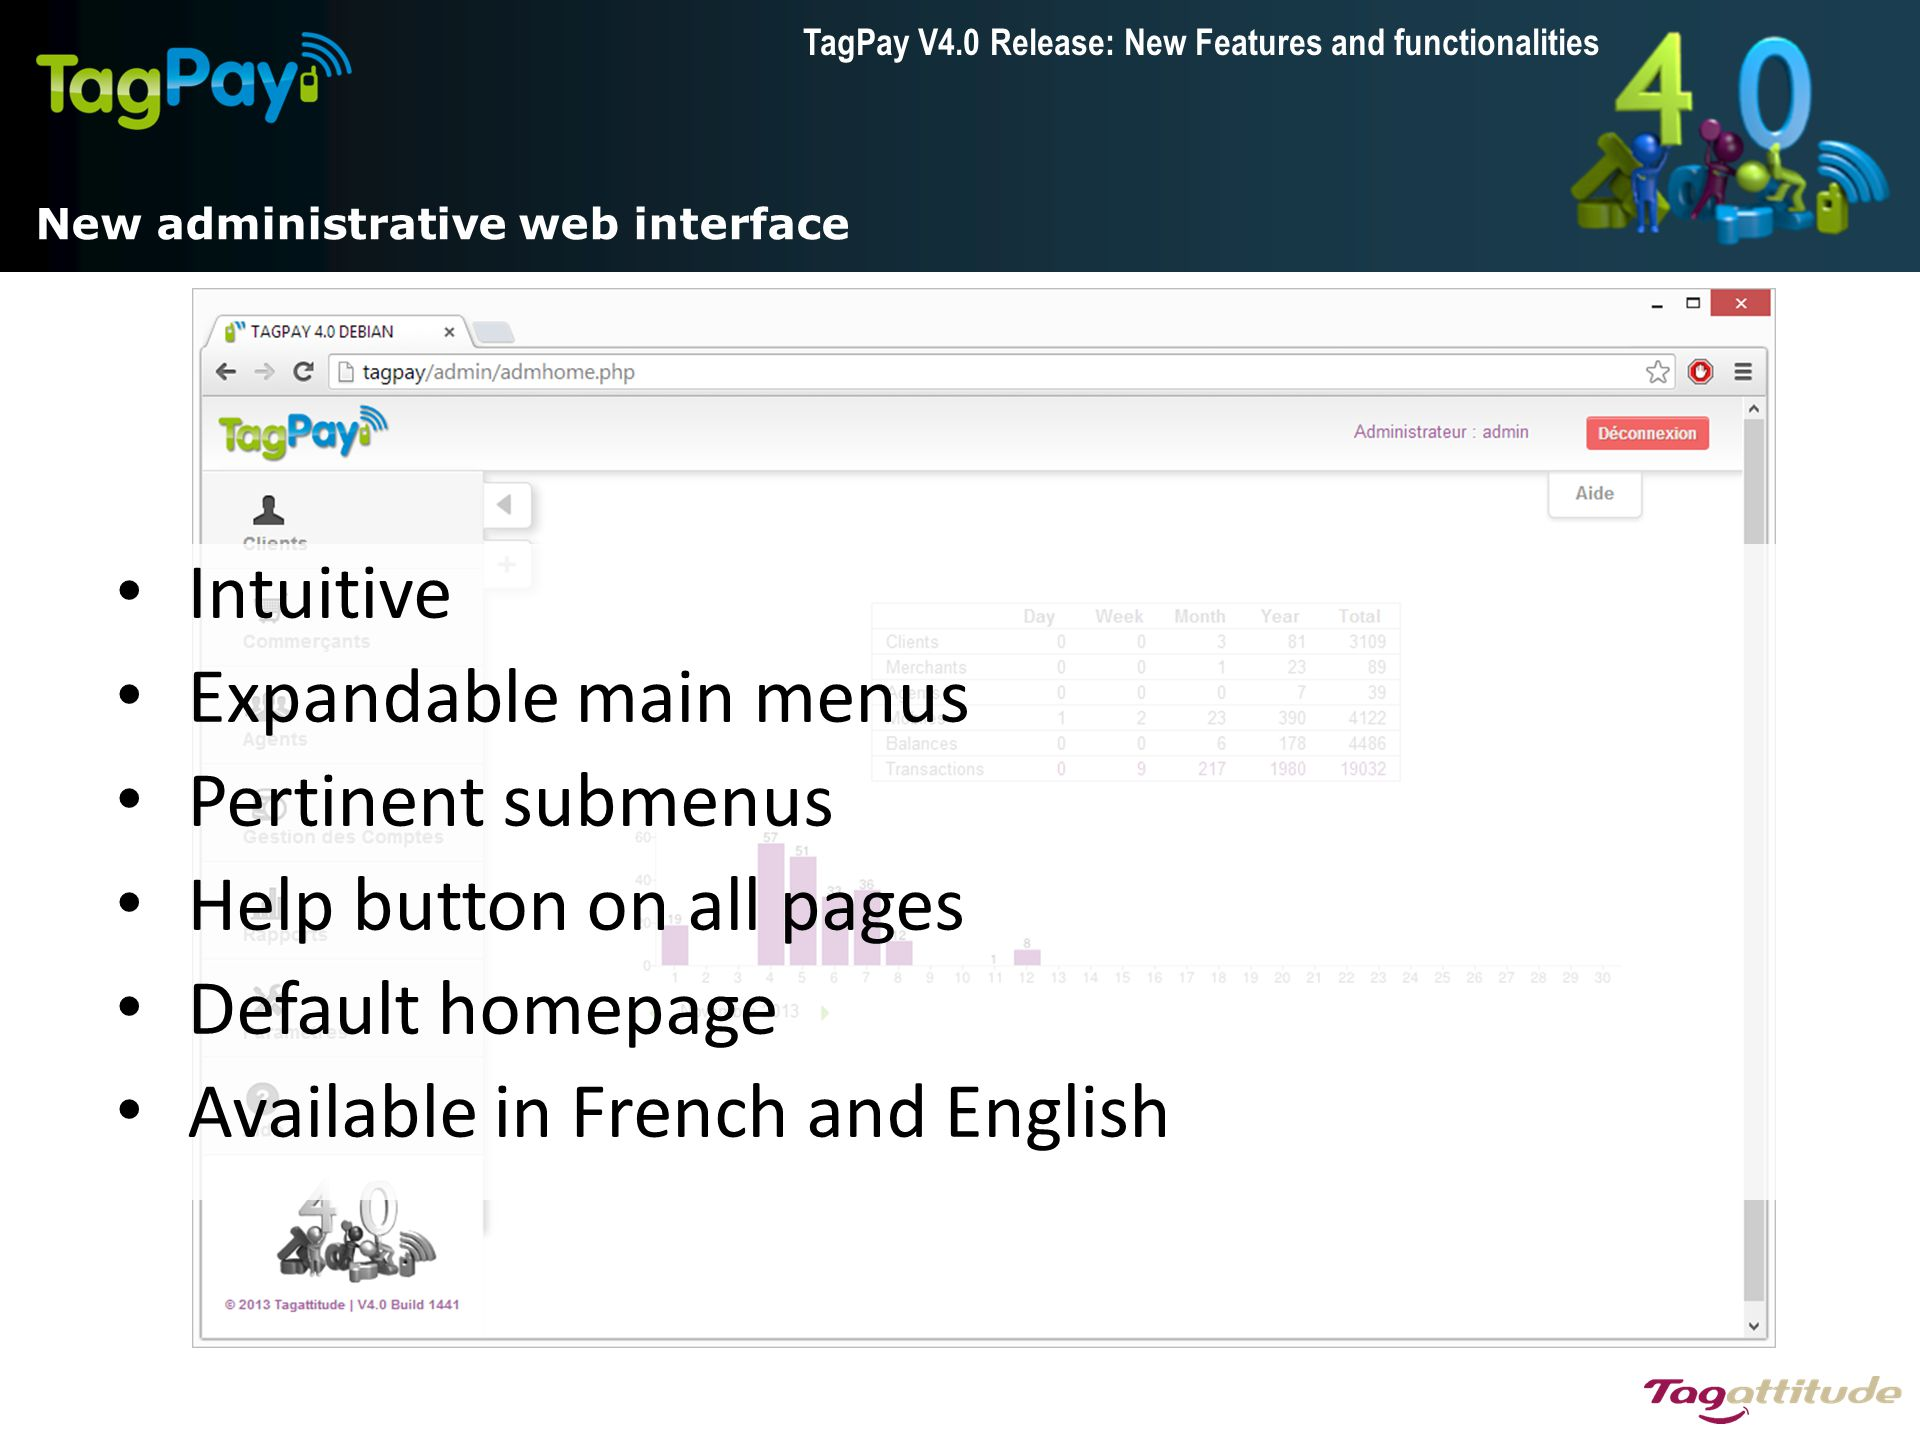 TagPay V4.0 Release: New Features and functionalities New administrative web interface Intuitive Expandable main menus Pertinent submenus Help button